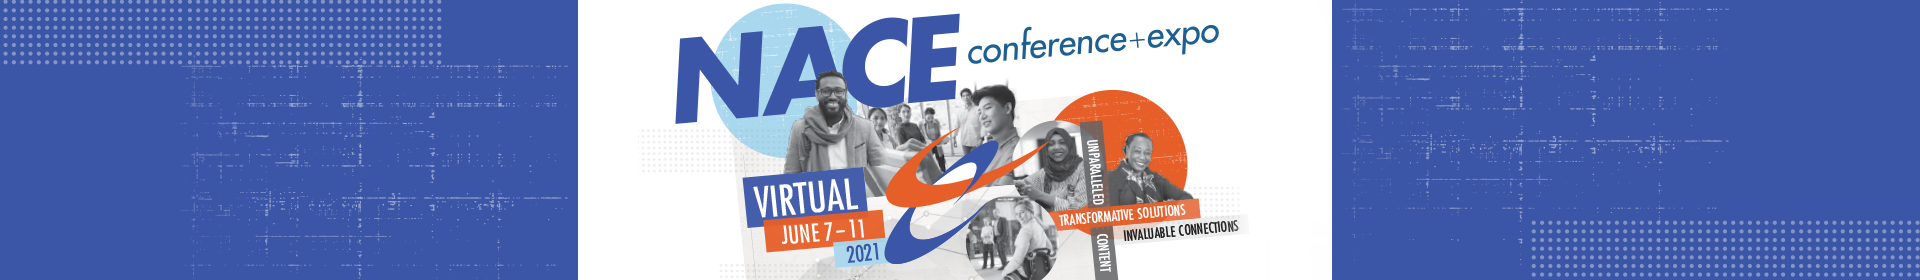 2021 NACE Conference & Expo Event Banner